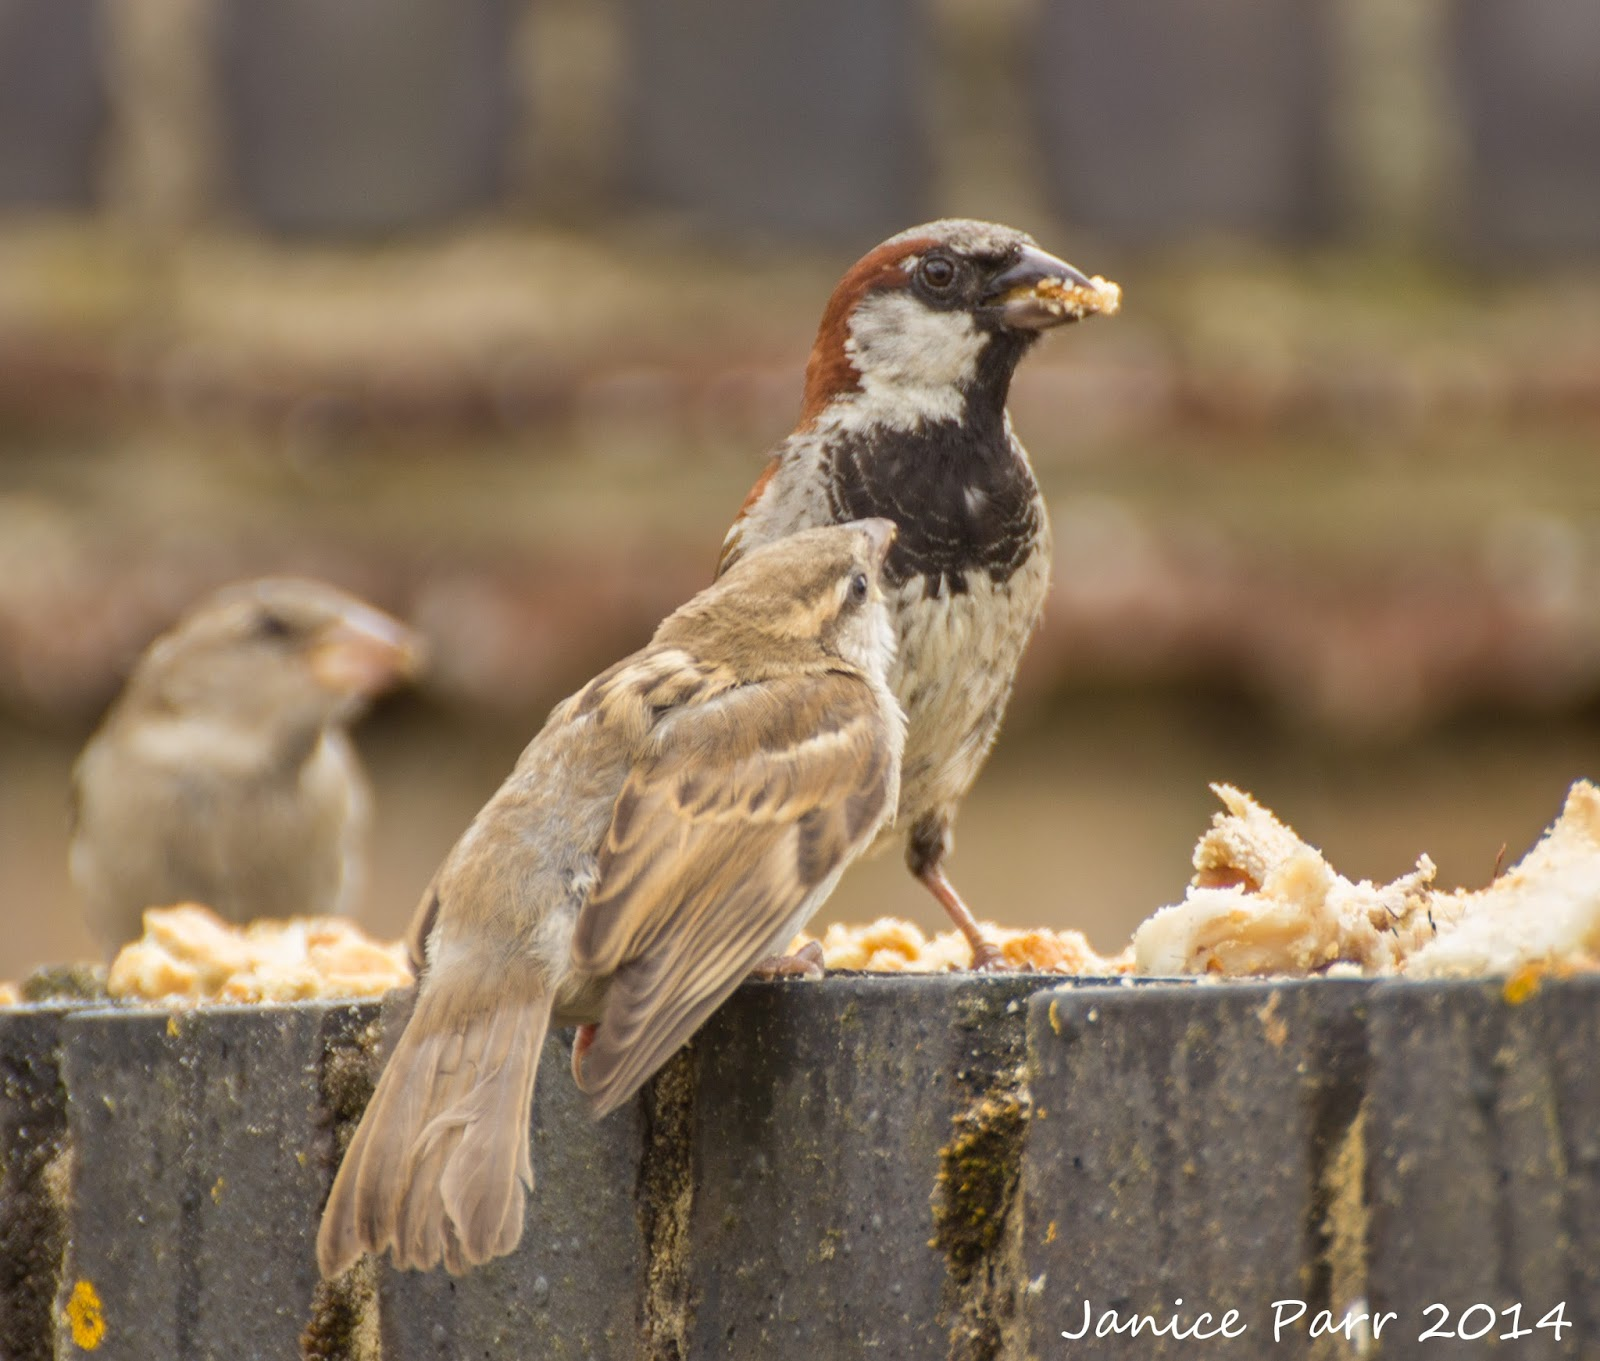 The nature around me male house sparrow feeding juvenile ham fat on her garden wall for the birds here in east anglia in the uk recently we were privileged to watch a male house sparrow feeding a juvenile thecheapjerseys Image collections